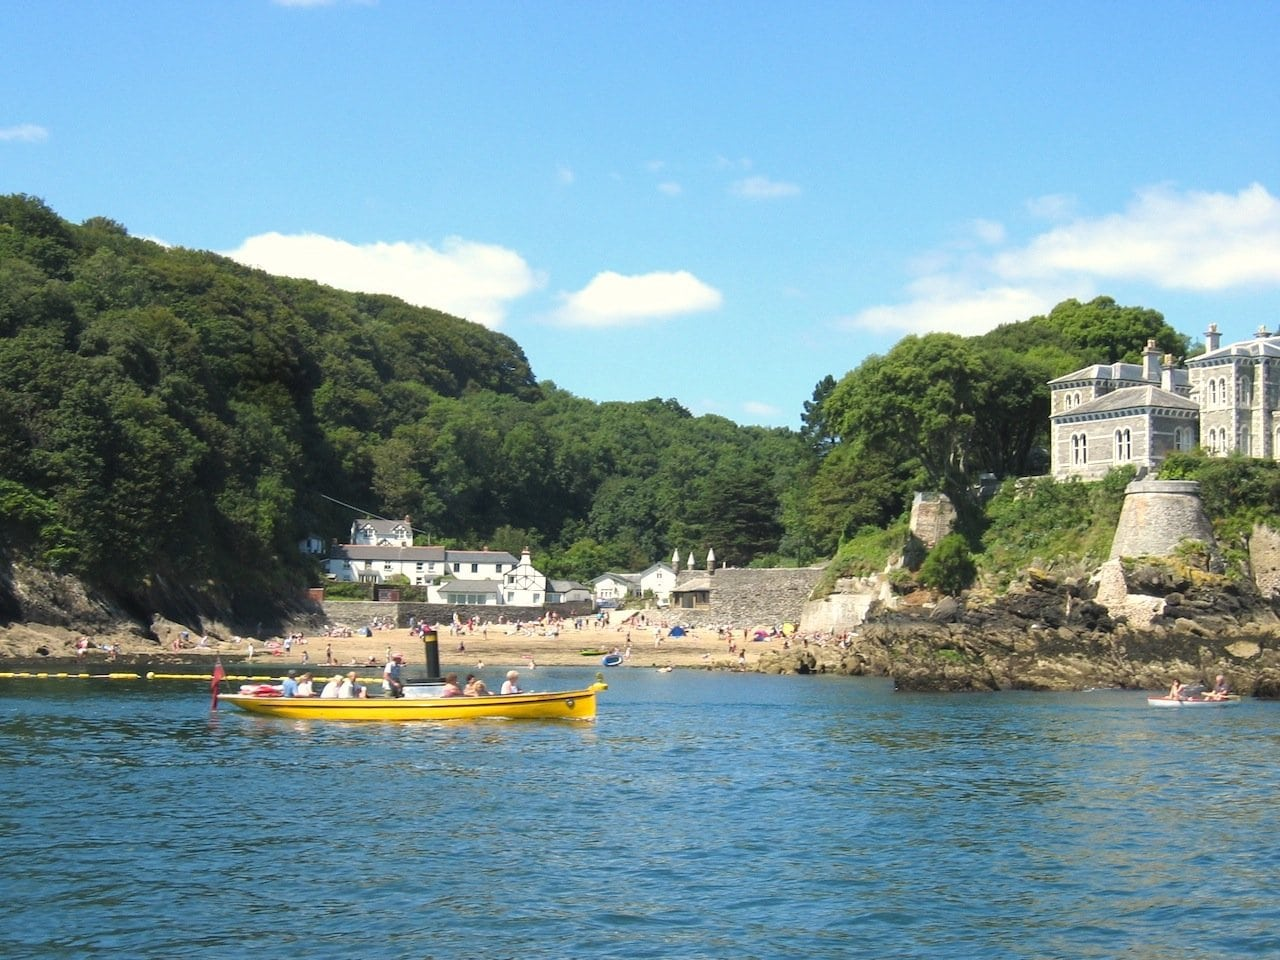 Things to do in Fowey on Holiday